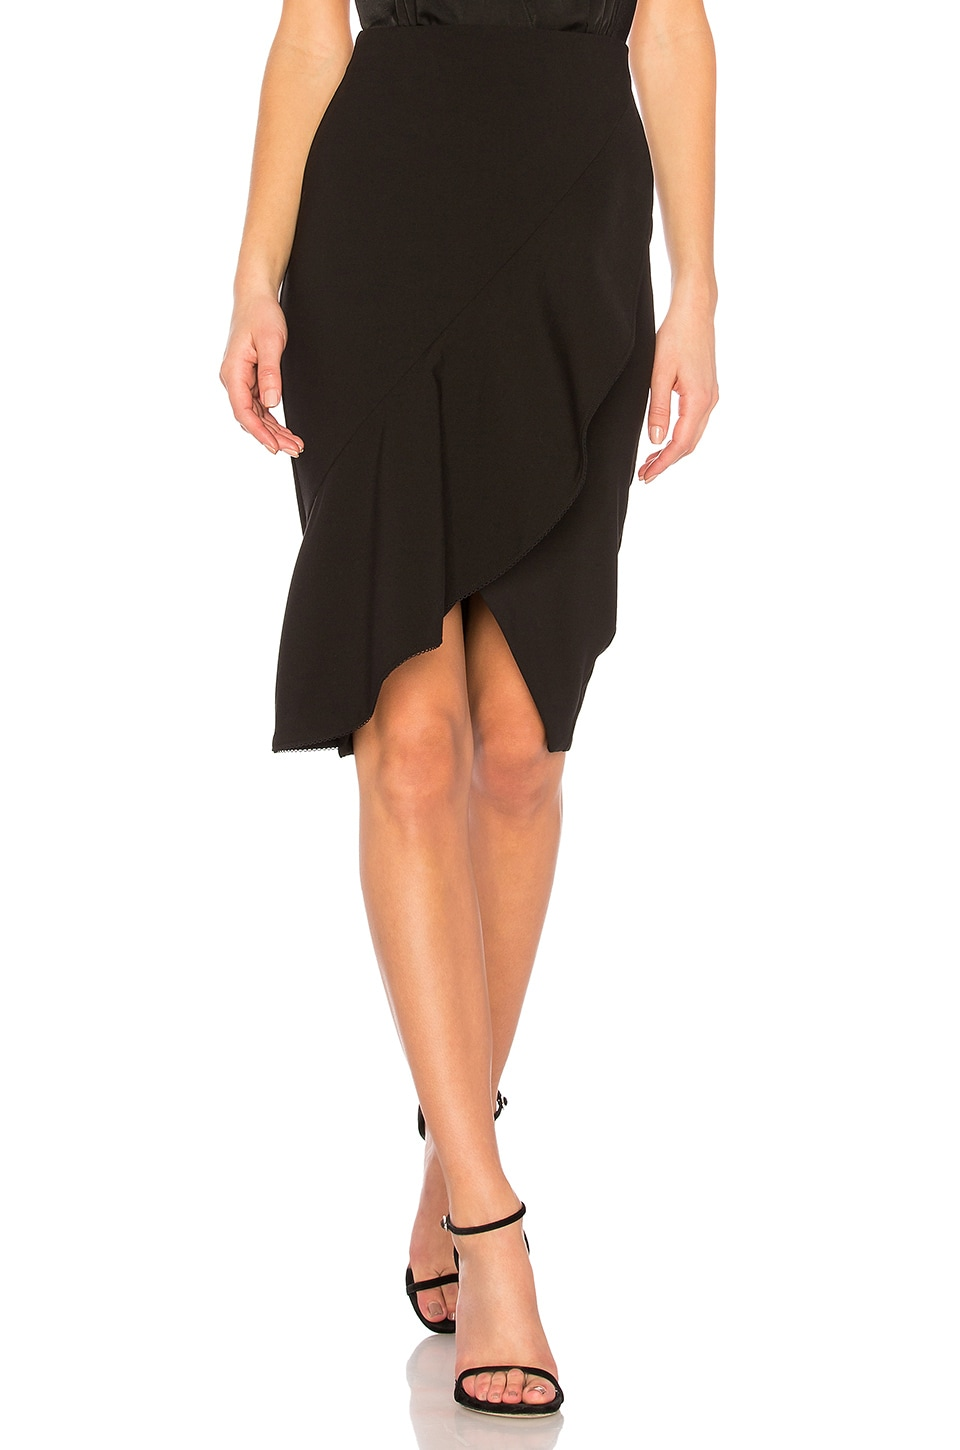 LIKELY Marino Skirt in Black